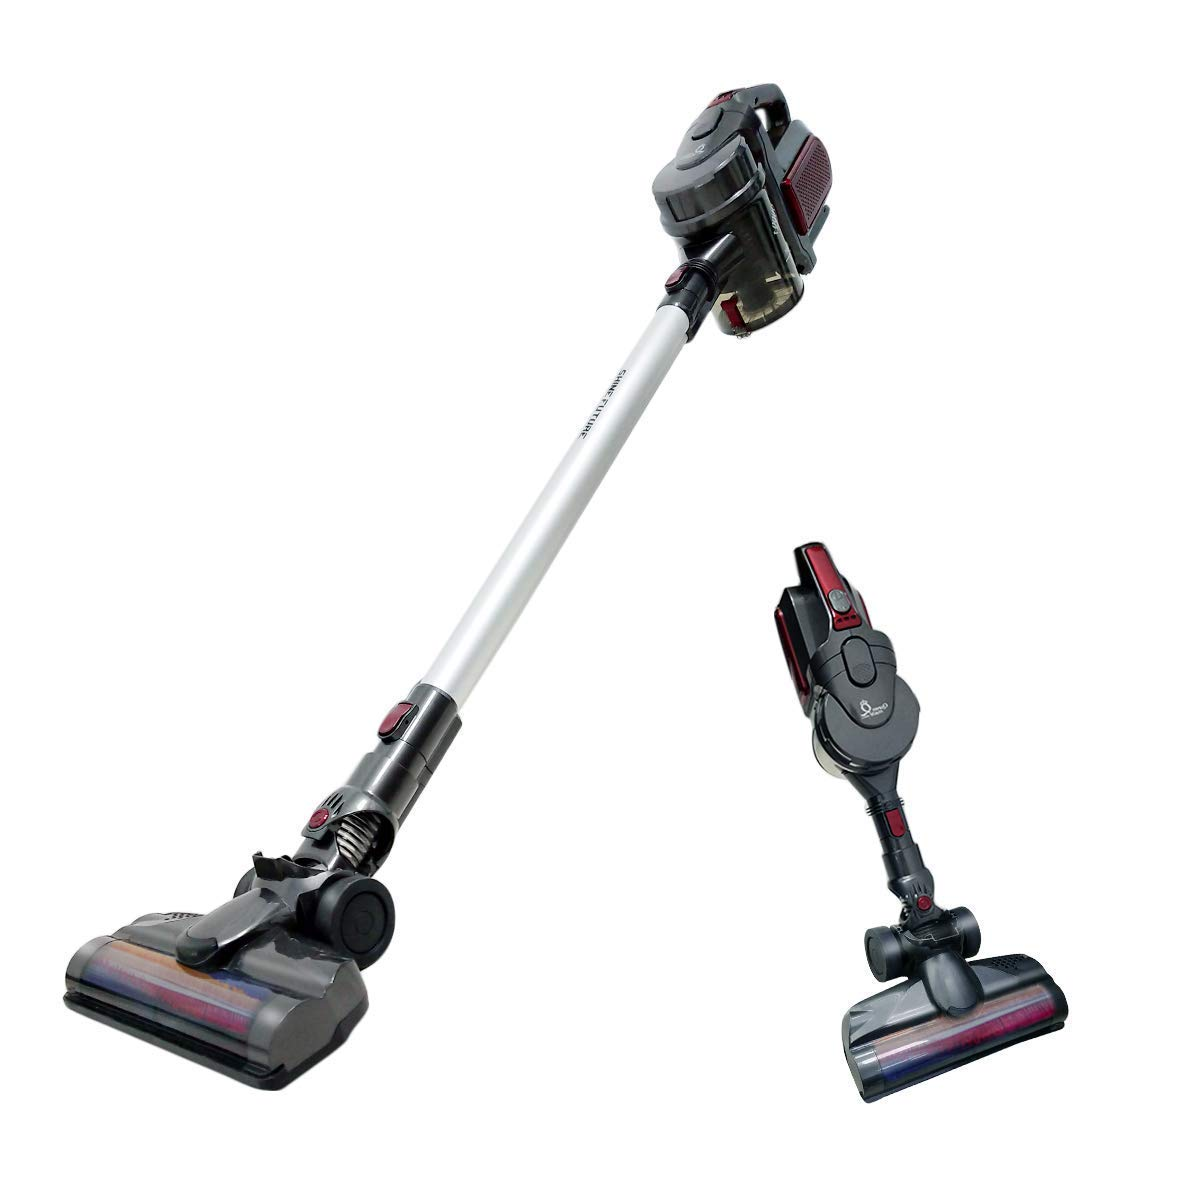 Cordless Vacuum Stick Vacuum Handheld Car Vacuum 2 in 1,Lightweight Bagless Detachable Rechargeable Upright Vacuum Cleaner with LED Light,8500pa Strong Suction for Home Cleaning